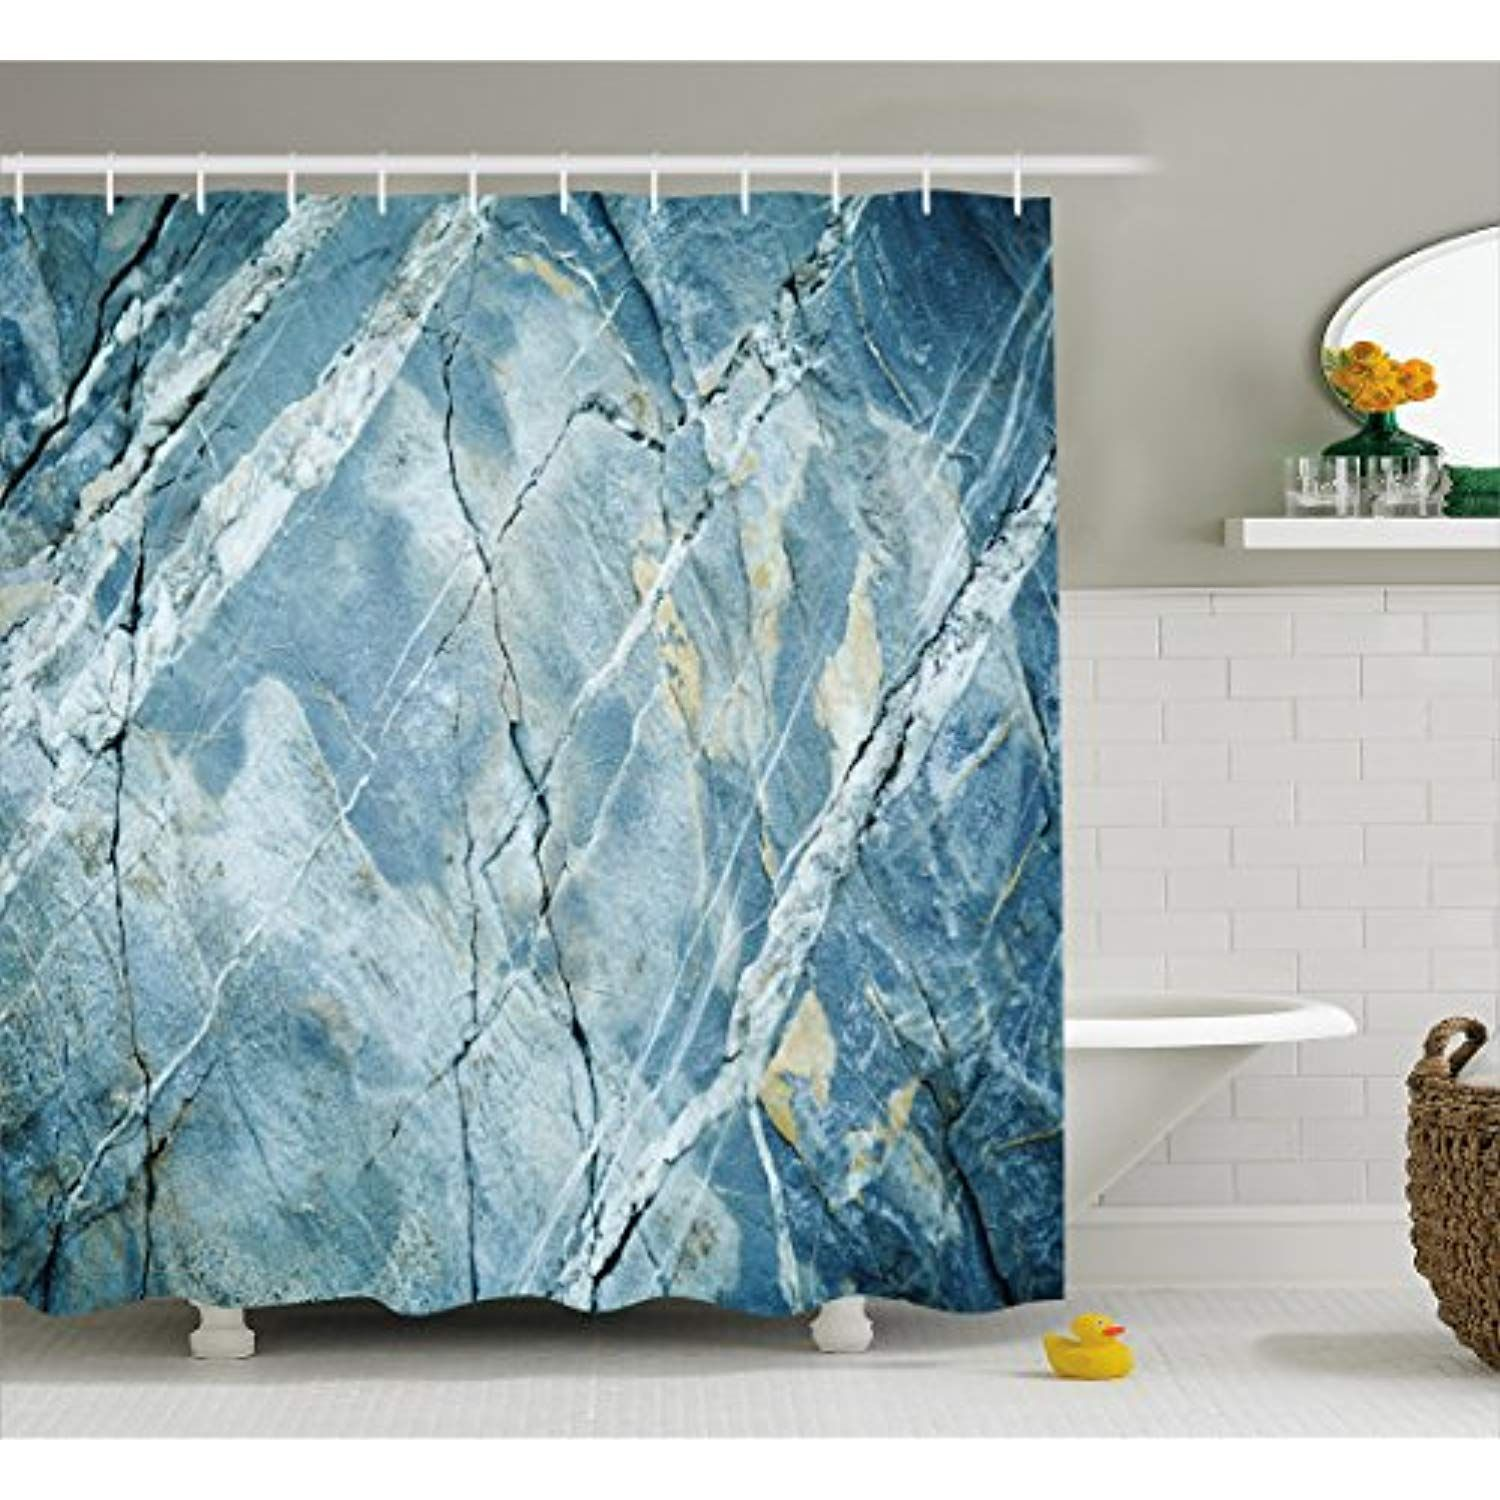 Ambesonne Waterproof Cloth Shower Curtain Batroom Decor with Hooks